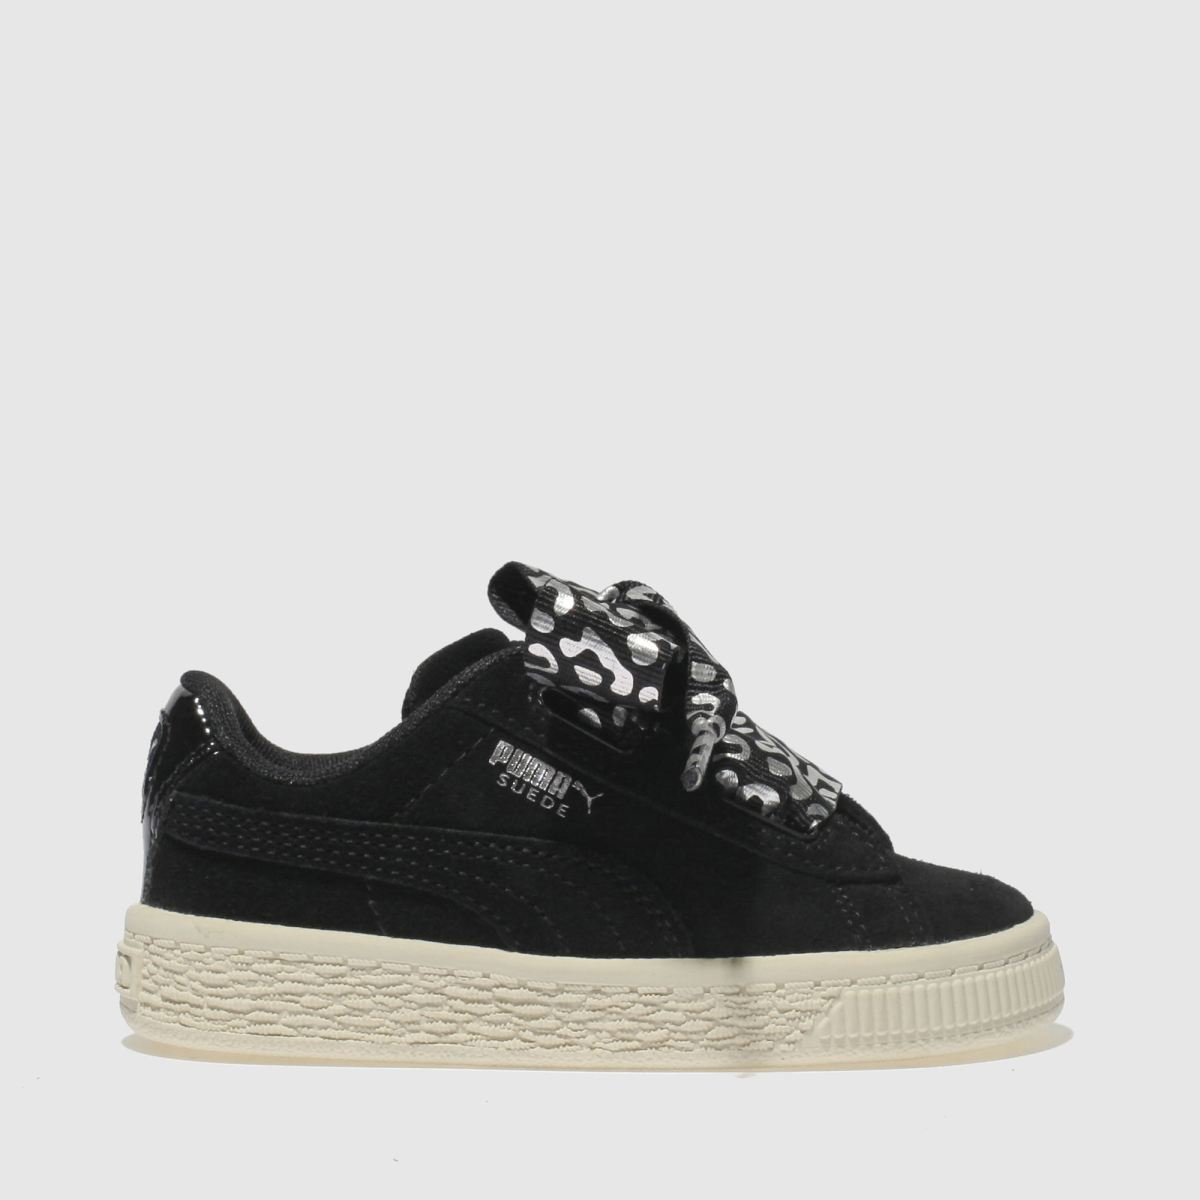 Puma Black & Silver Suede Heart Athluxe Trainers Toddler